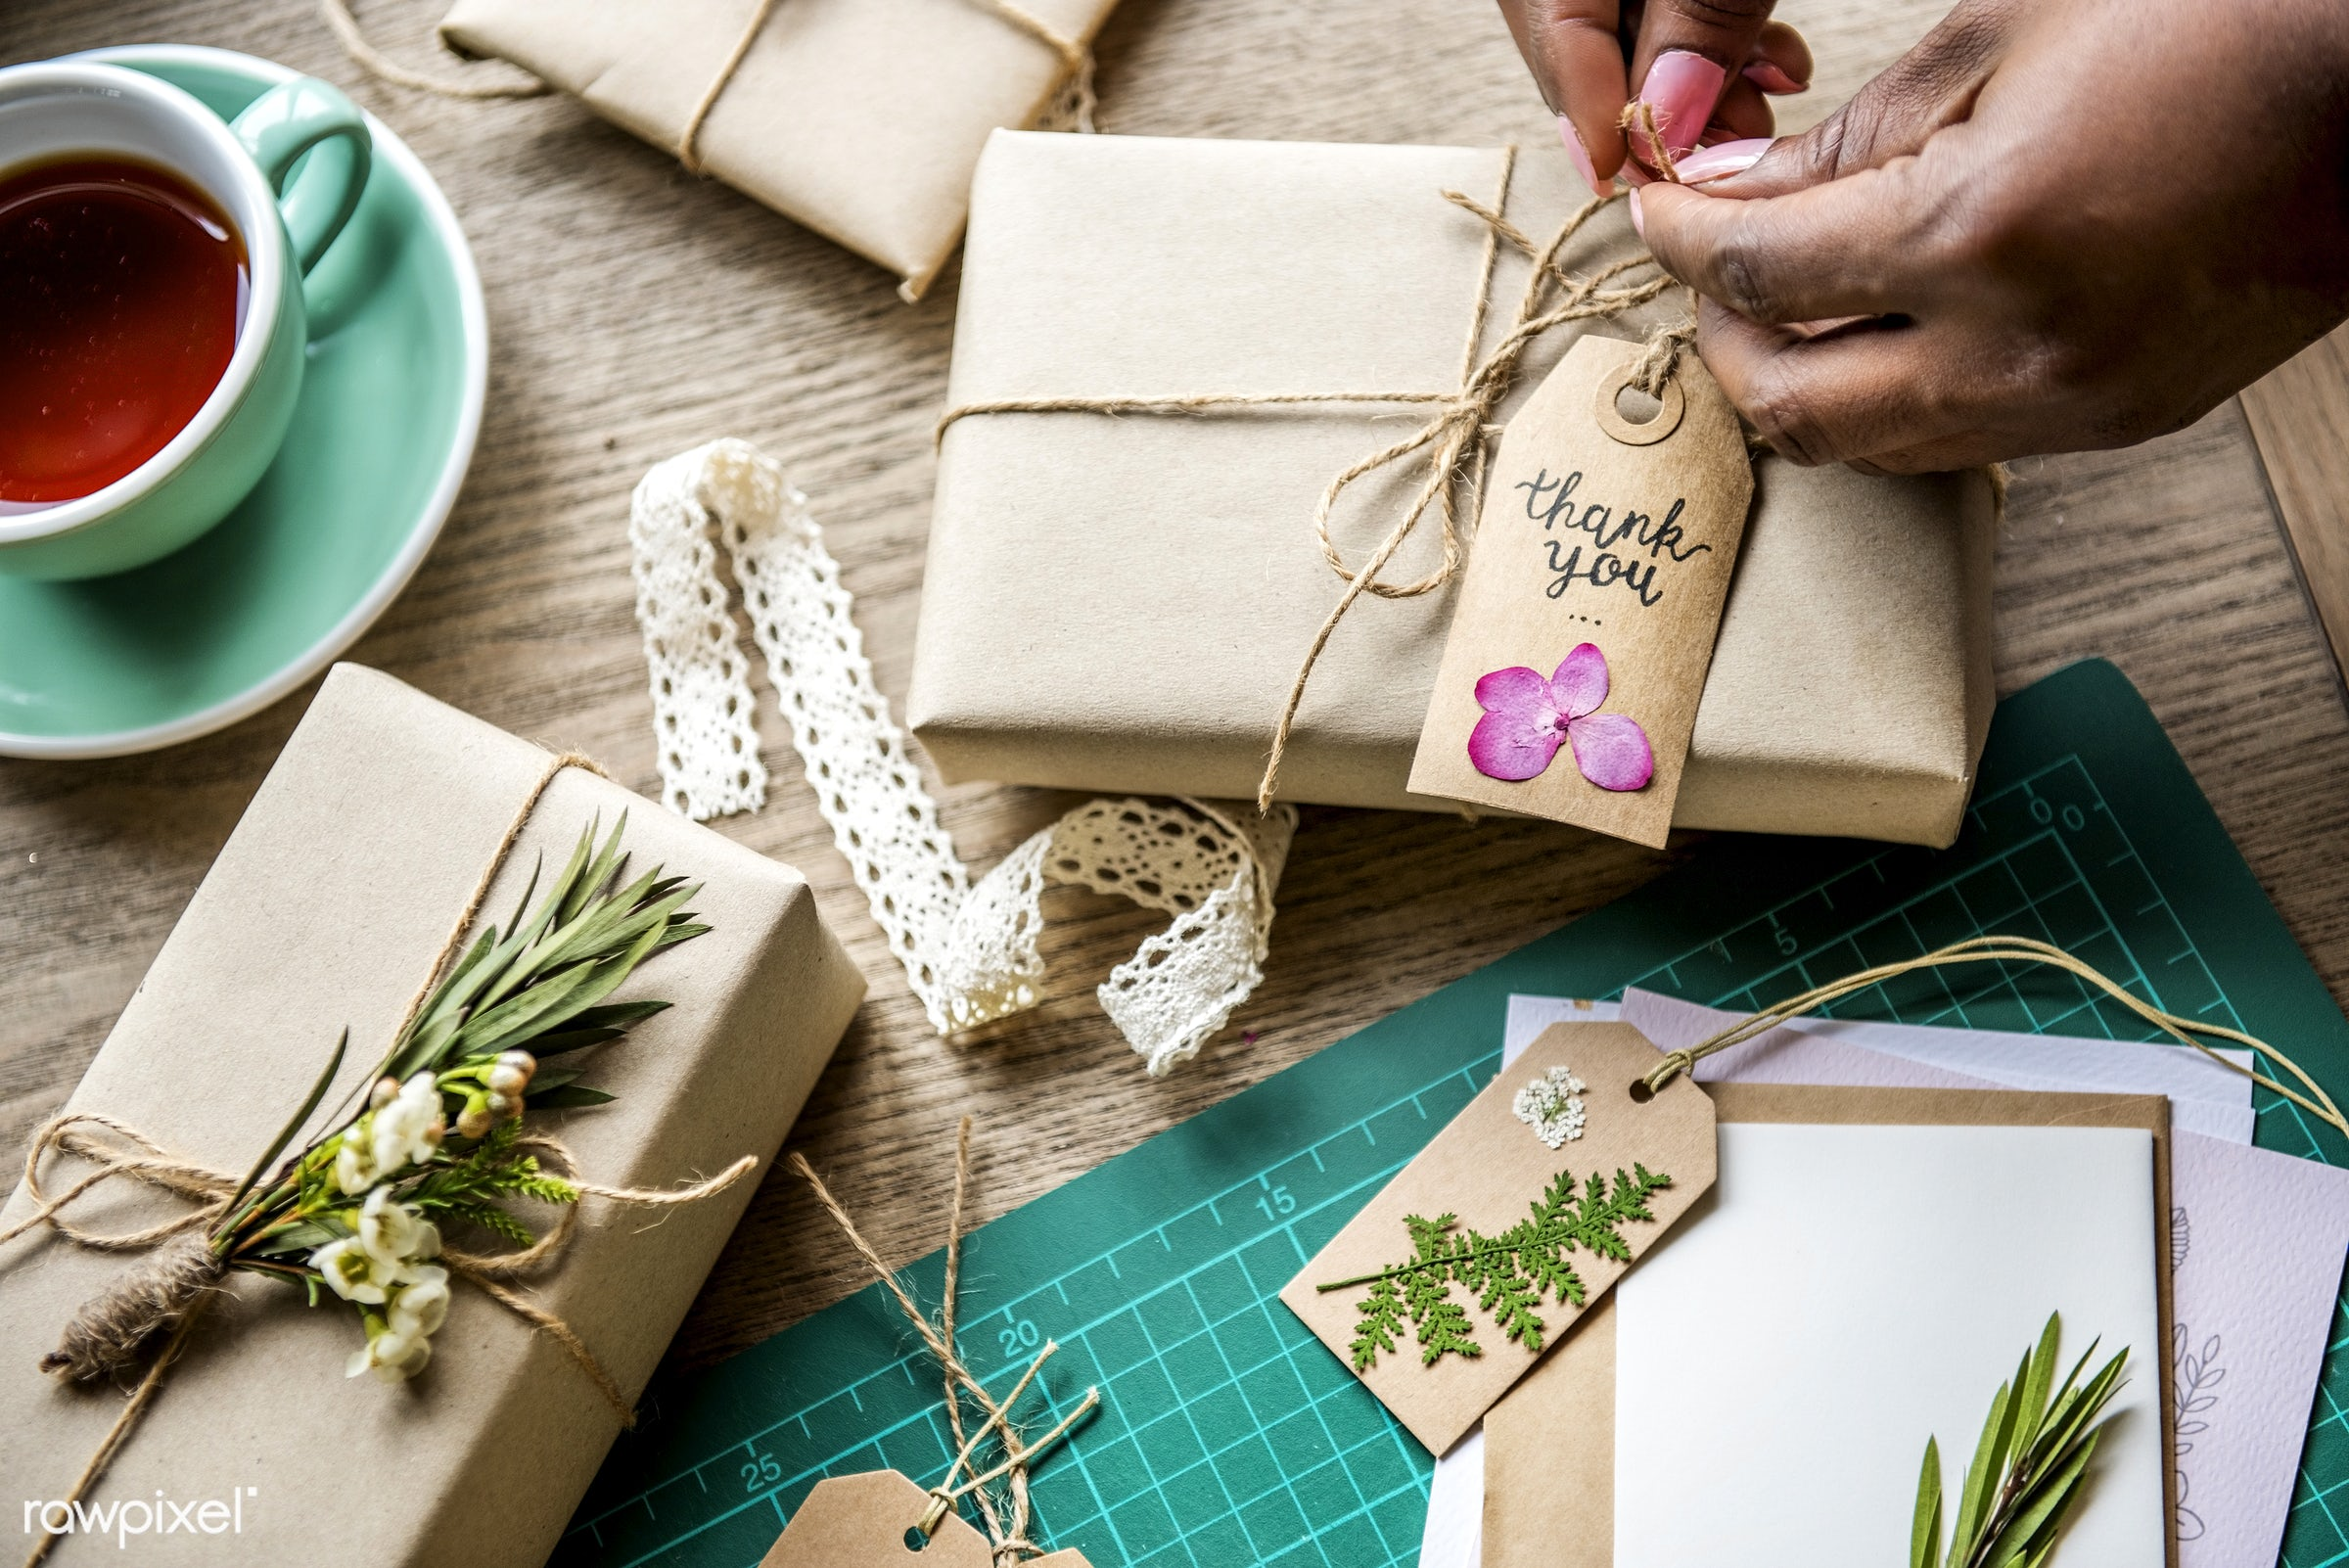 thank you, craft, tag, pack, decor, nature, rope, artsy, interest, ribbon, card, working, flower, option, work station, wrap...